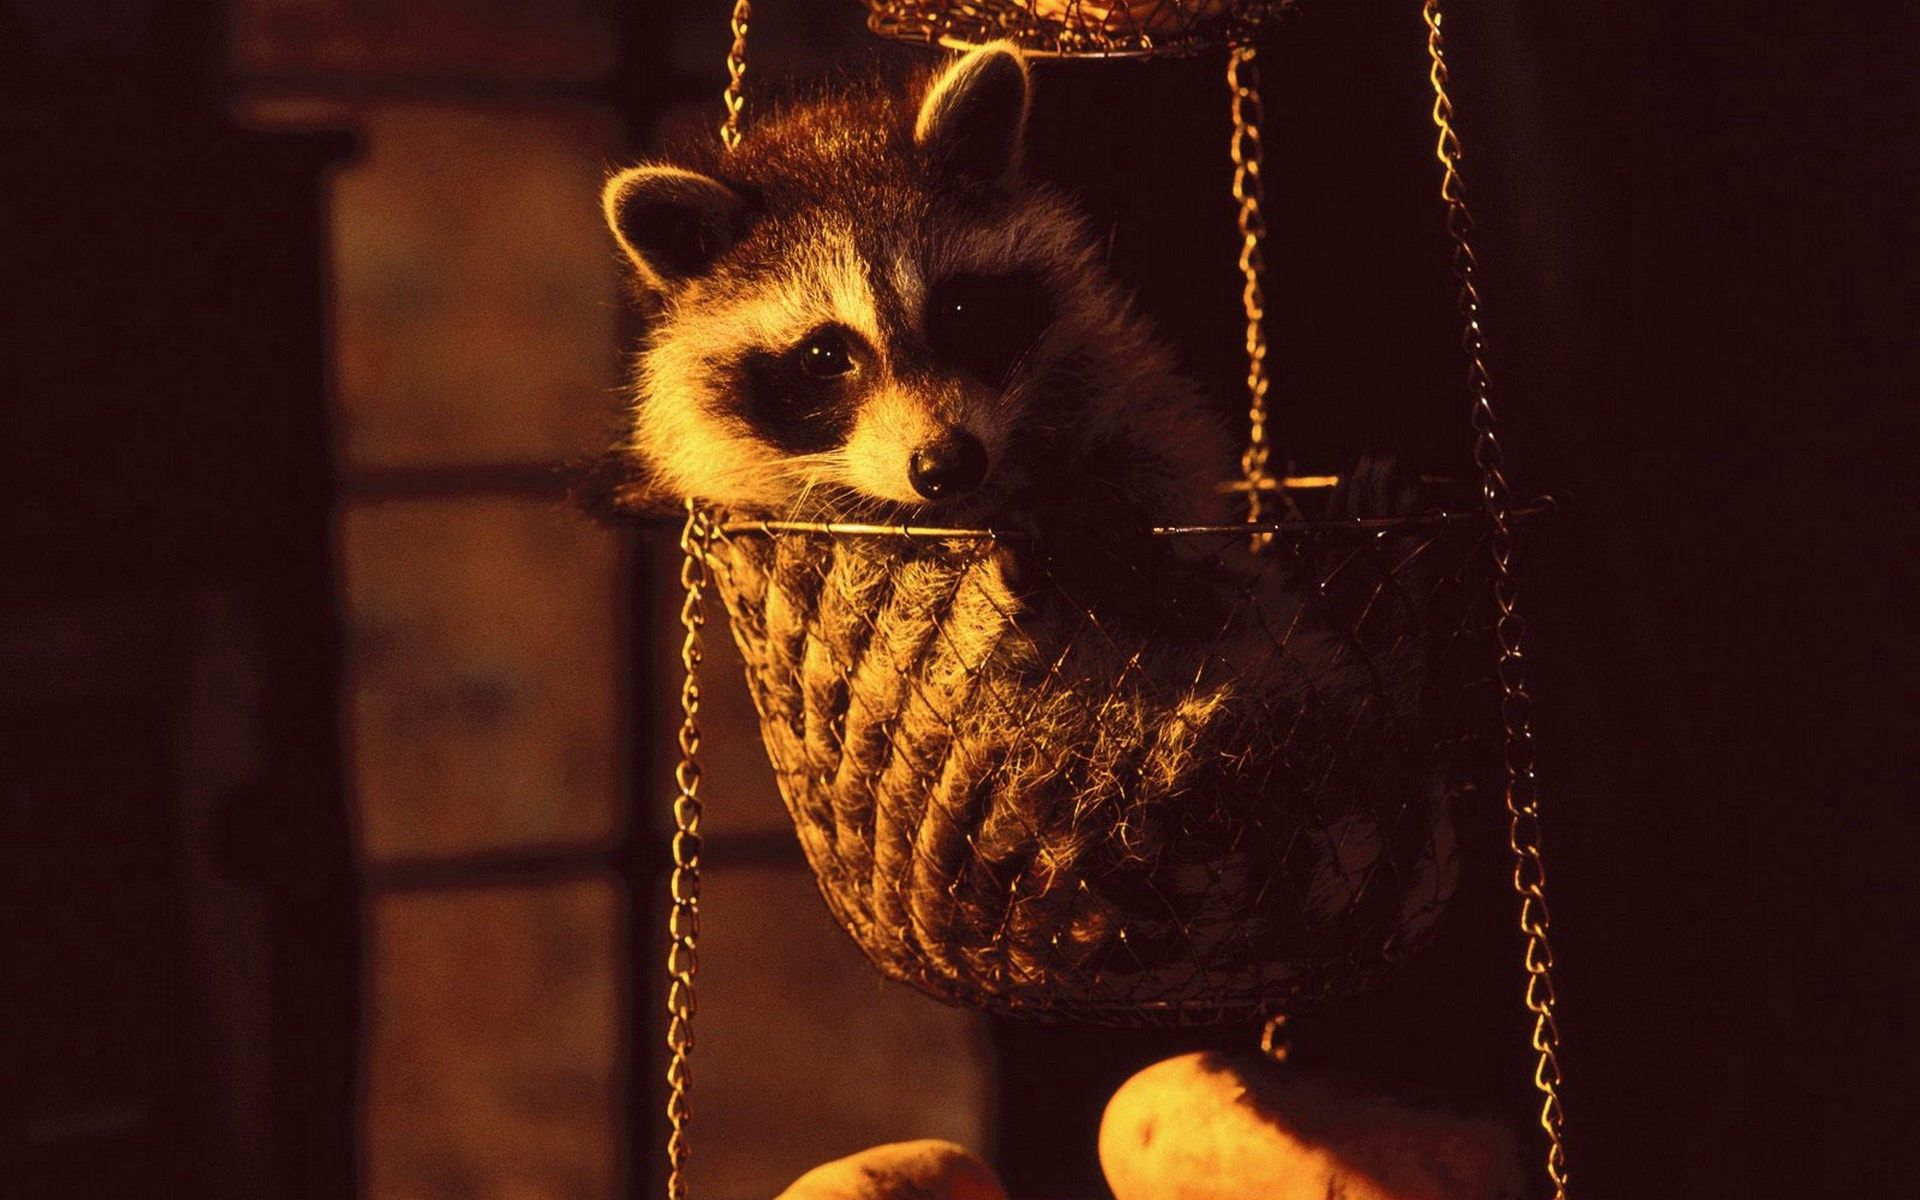 150096 Screensavers and Wallpapers Raccoon for phone. Download Dark, Shadow, Animal, Scales, Raccoon, Libra pictures for free